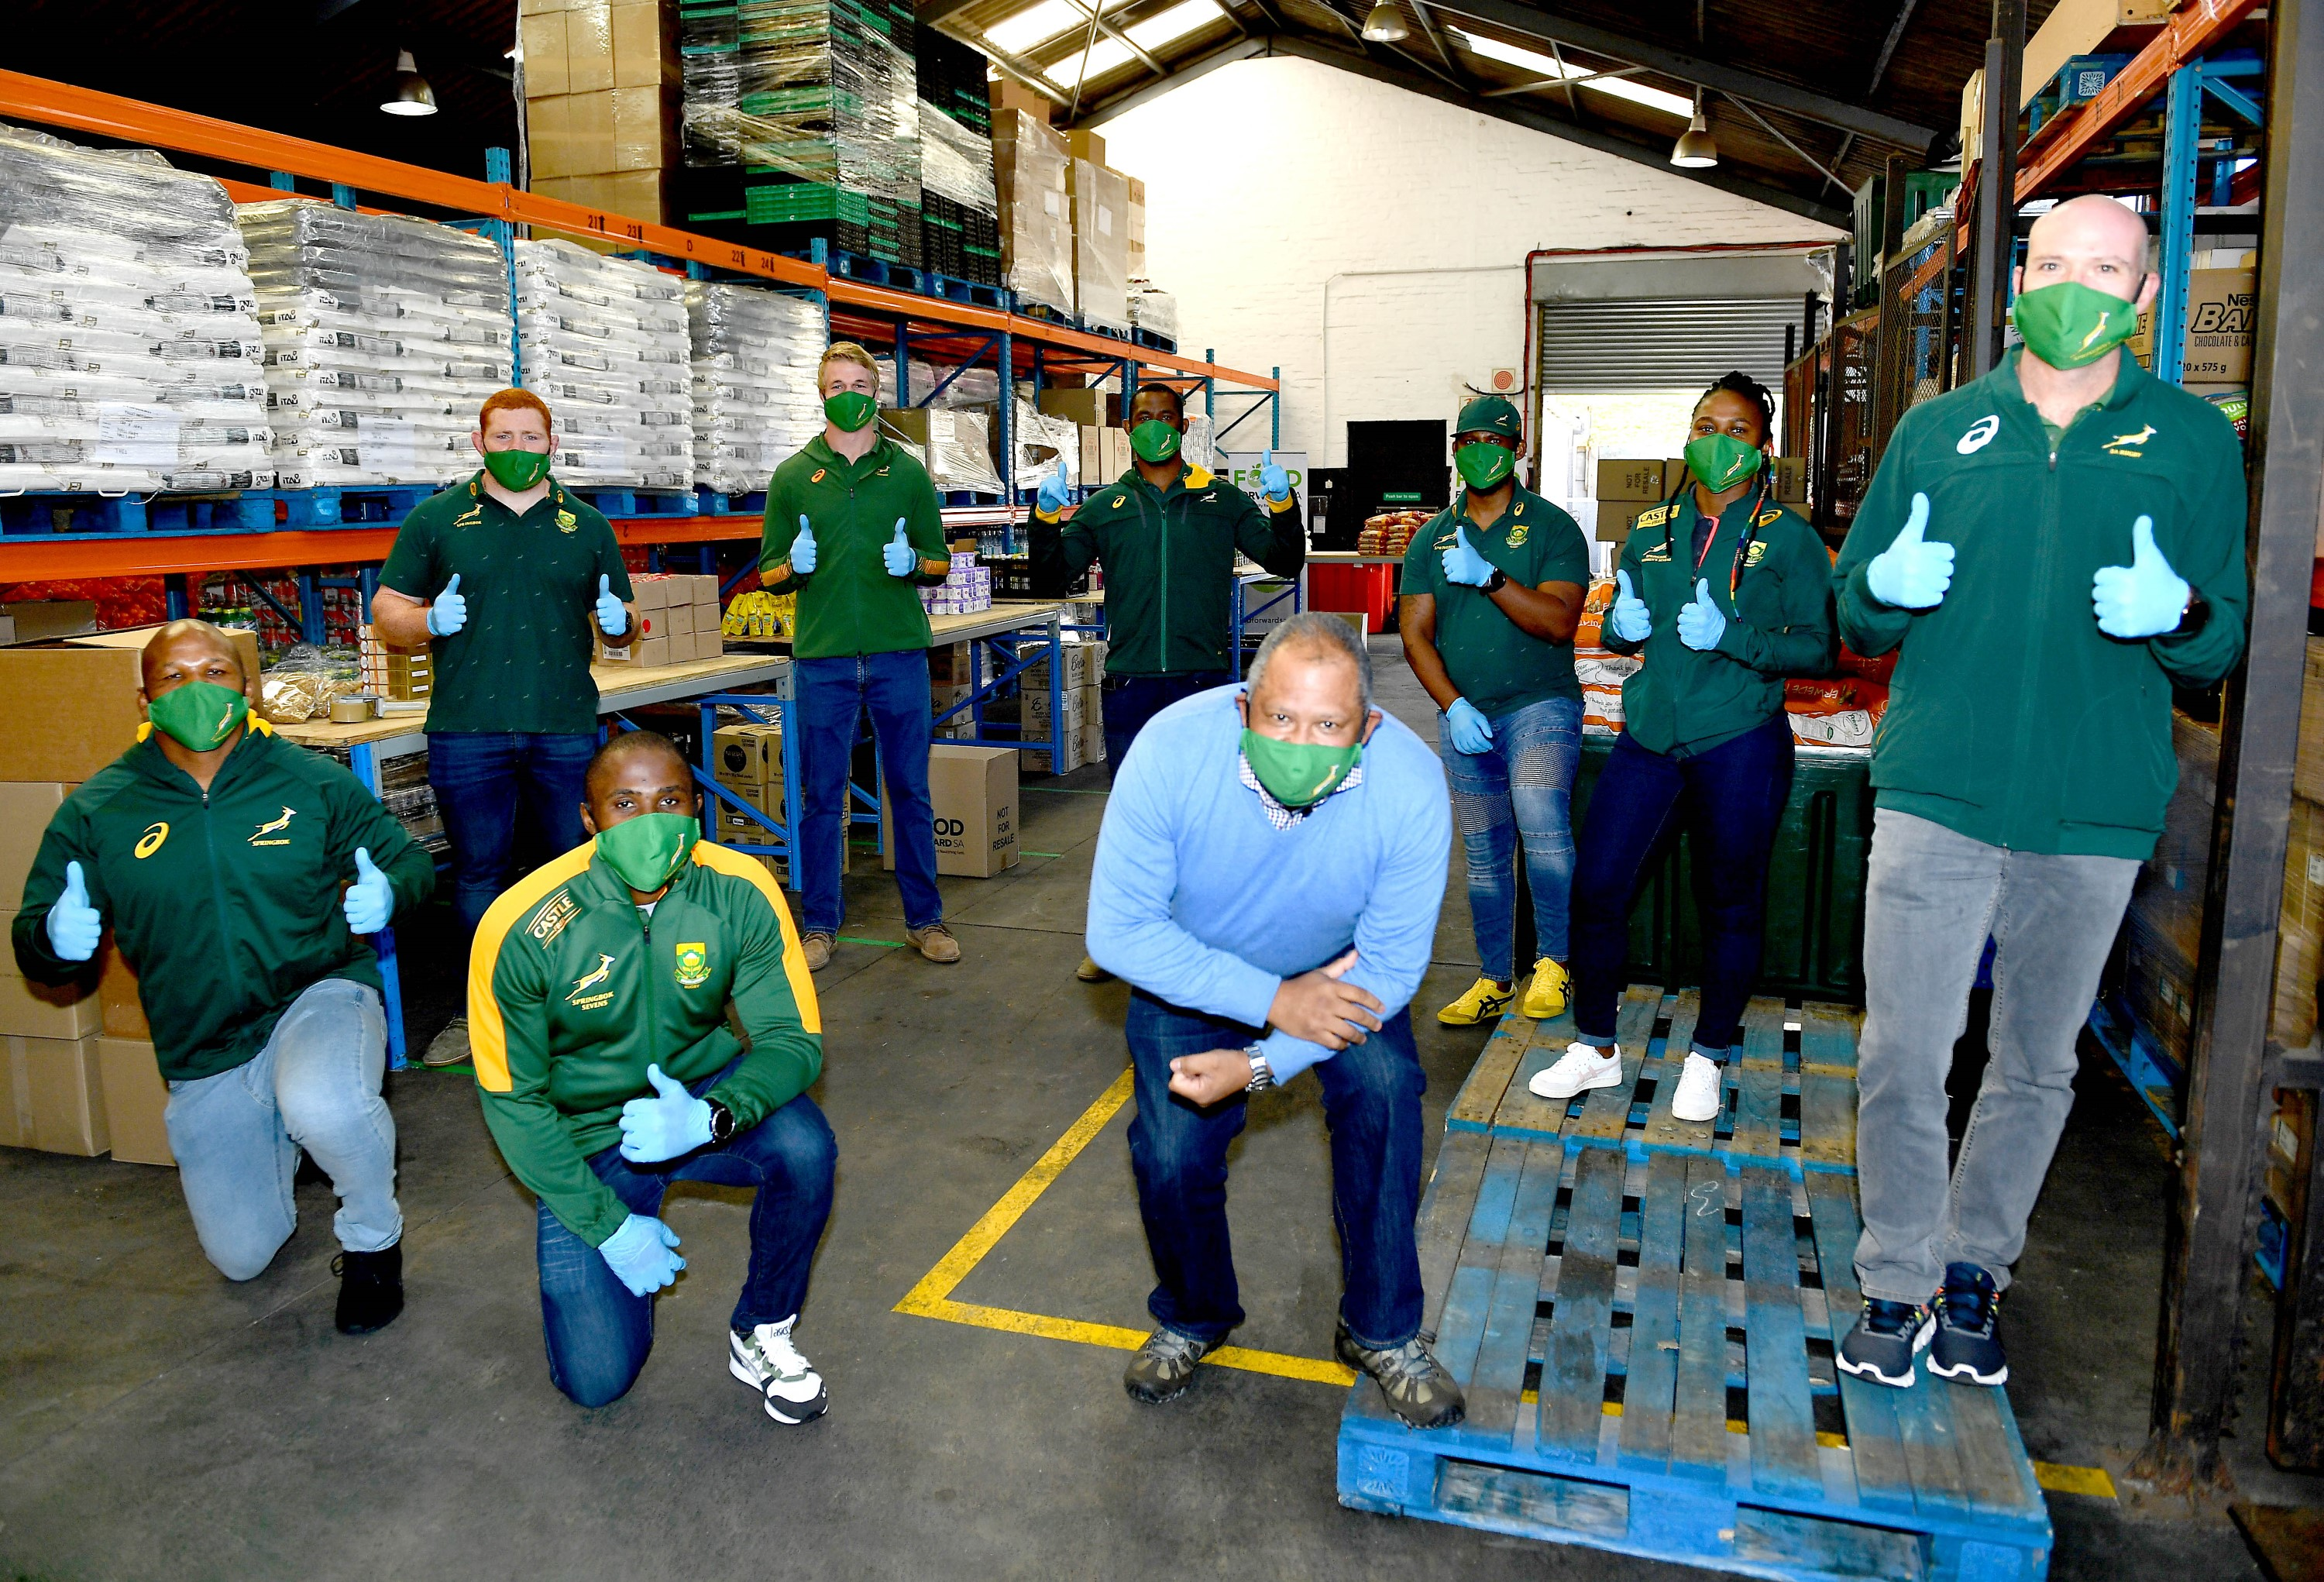 Springboks assist with packing food parcels in Cape Town